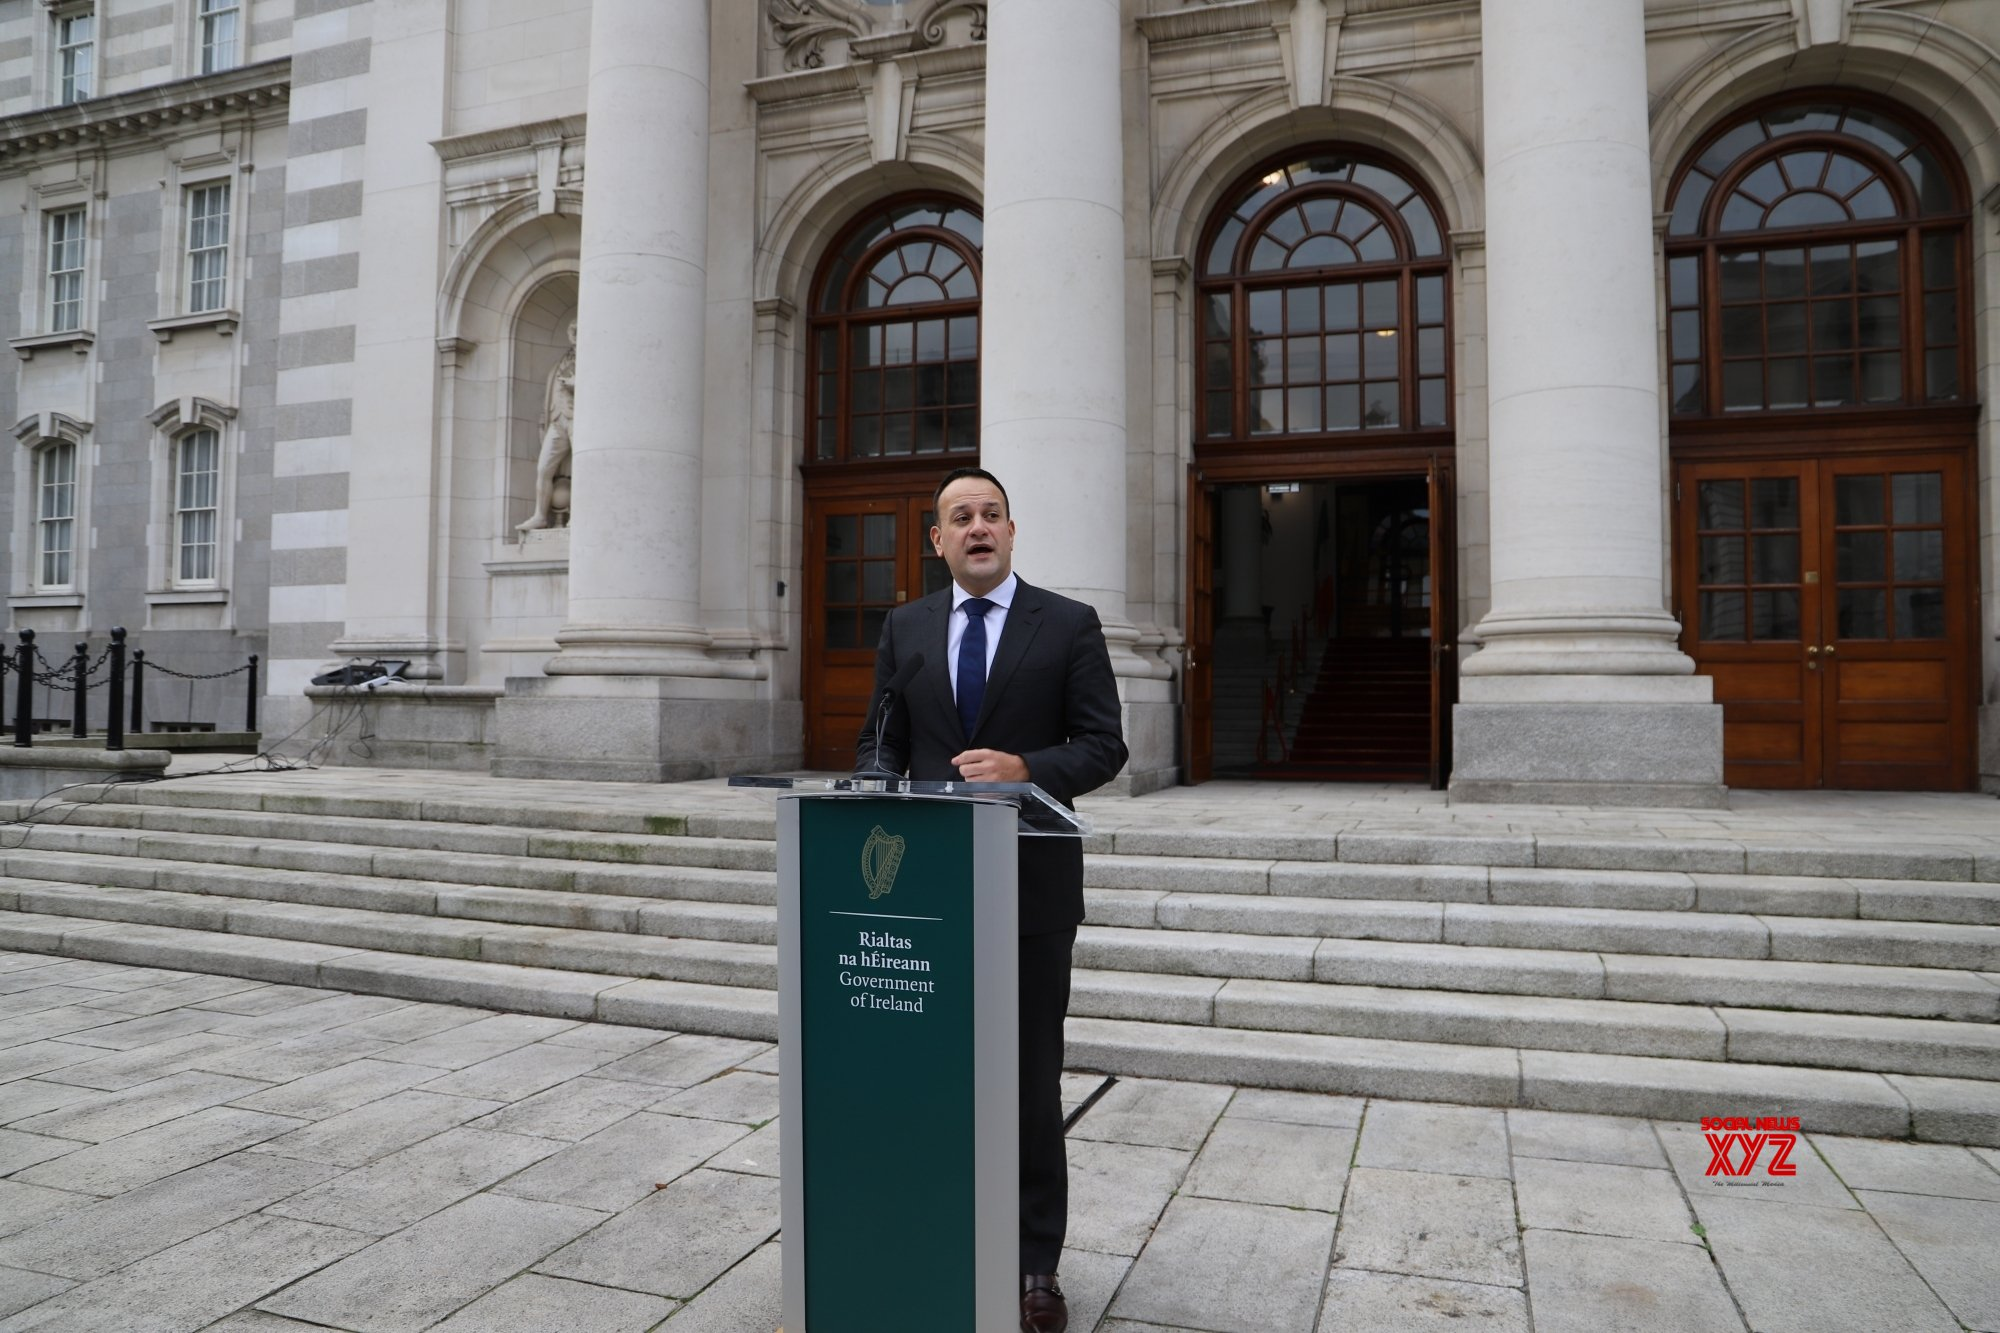 No change to two-meter social distancing rule in Ireland: PM